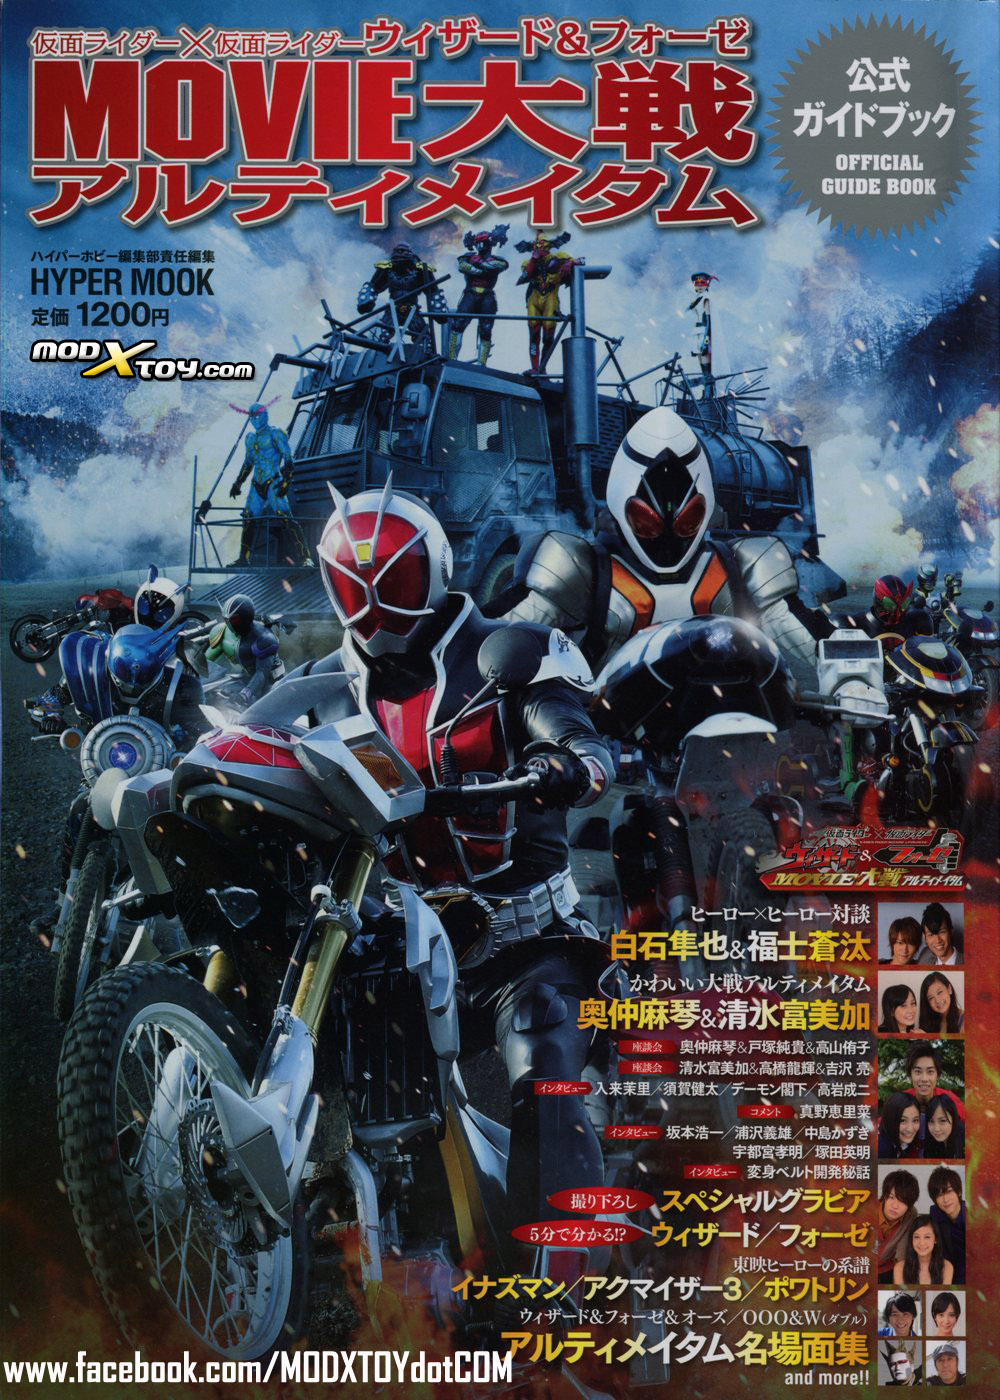 Kamen rider fourze full cast - Studio movie grill coupon december 2015